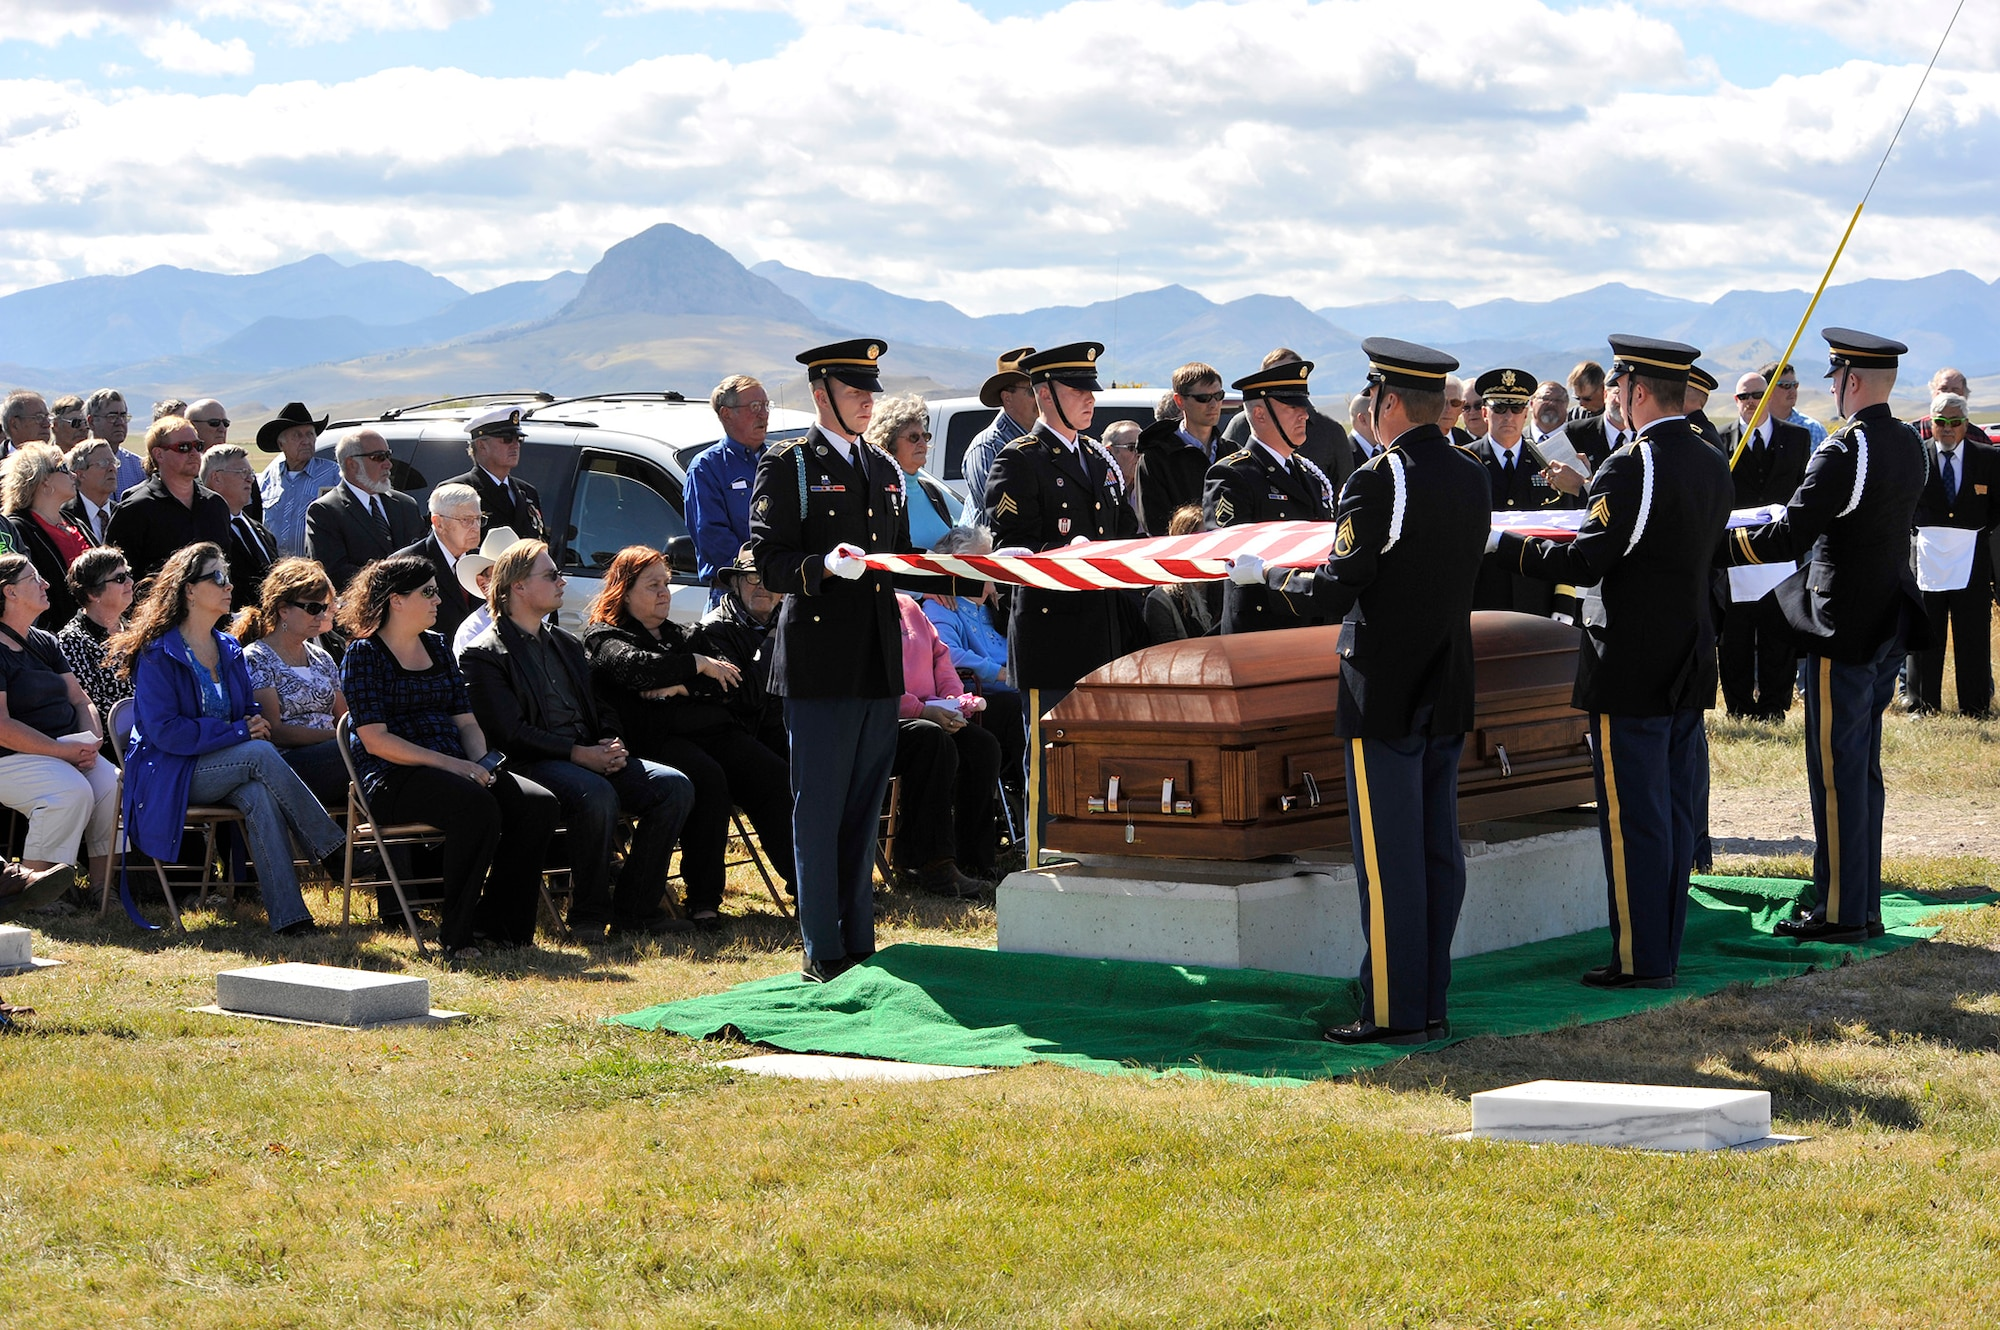 Soldiers from the Montana Army National Guard honor guard elevate an American flag over the casket containing Army Air Forces 1st Lt. William D. Bernier Sept. 19, 2014,  at Augusta Cemetery, Mont. Bernier was killed in action over New Guinea during WWII, and his remains were positively identified earlier this year. (Air Force photo/John Turner)